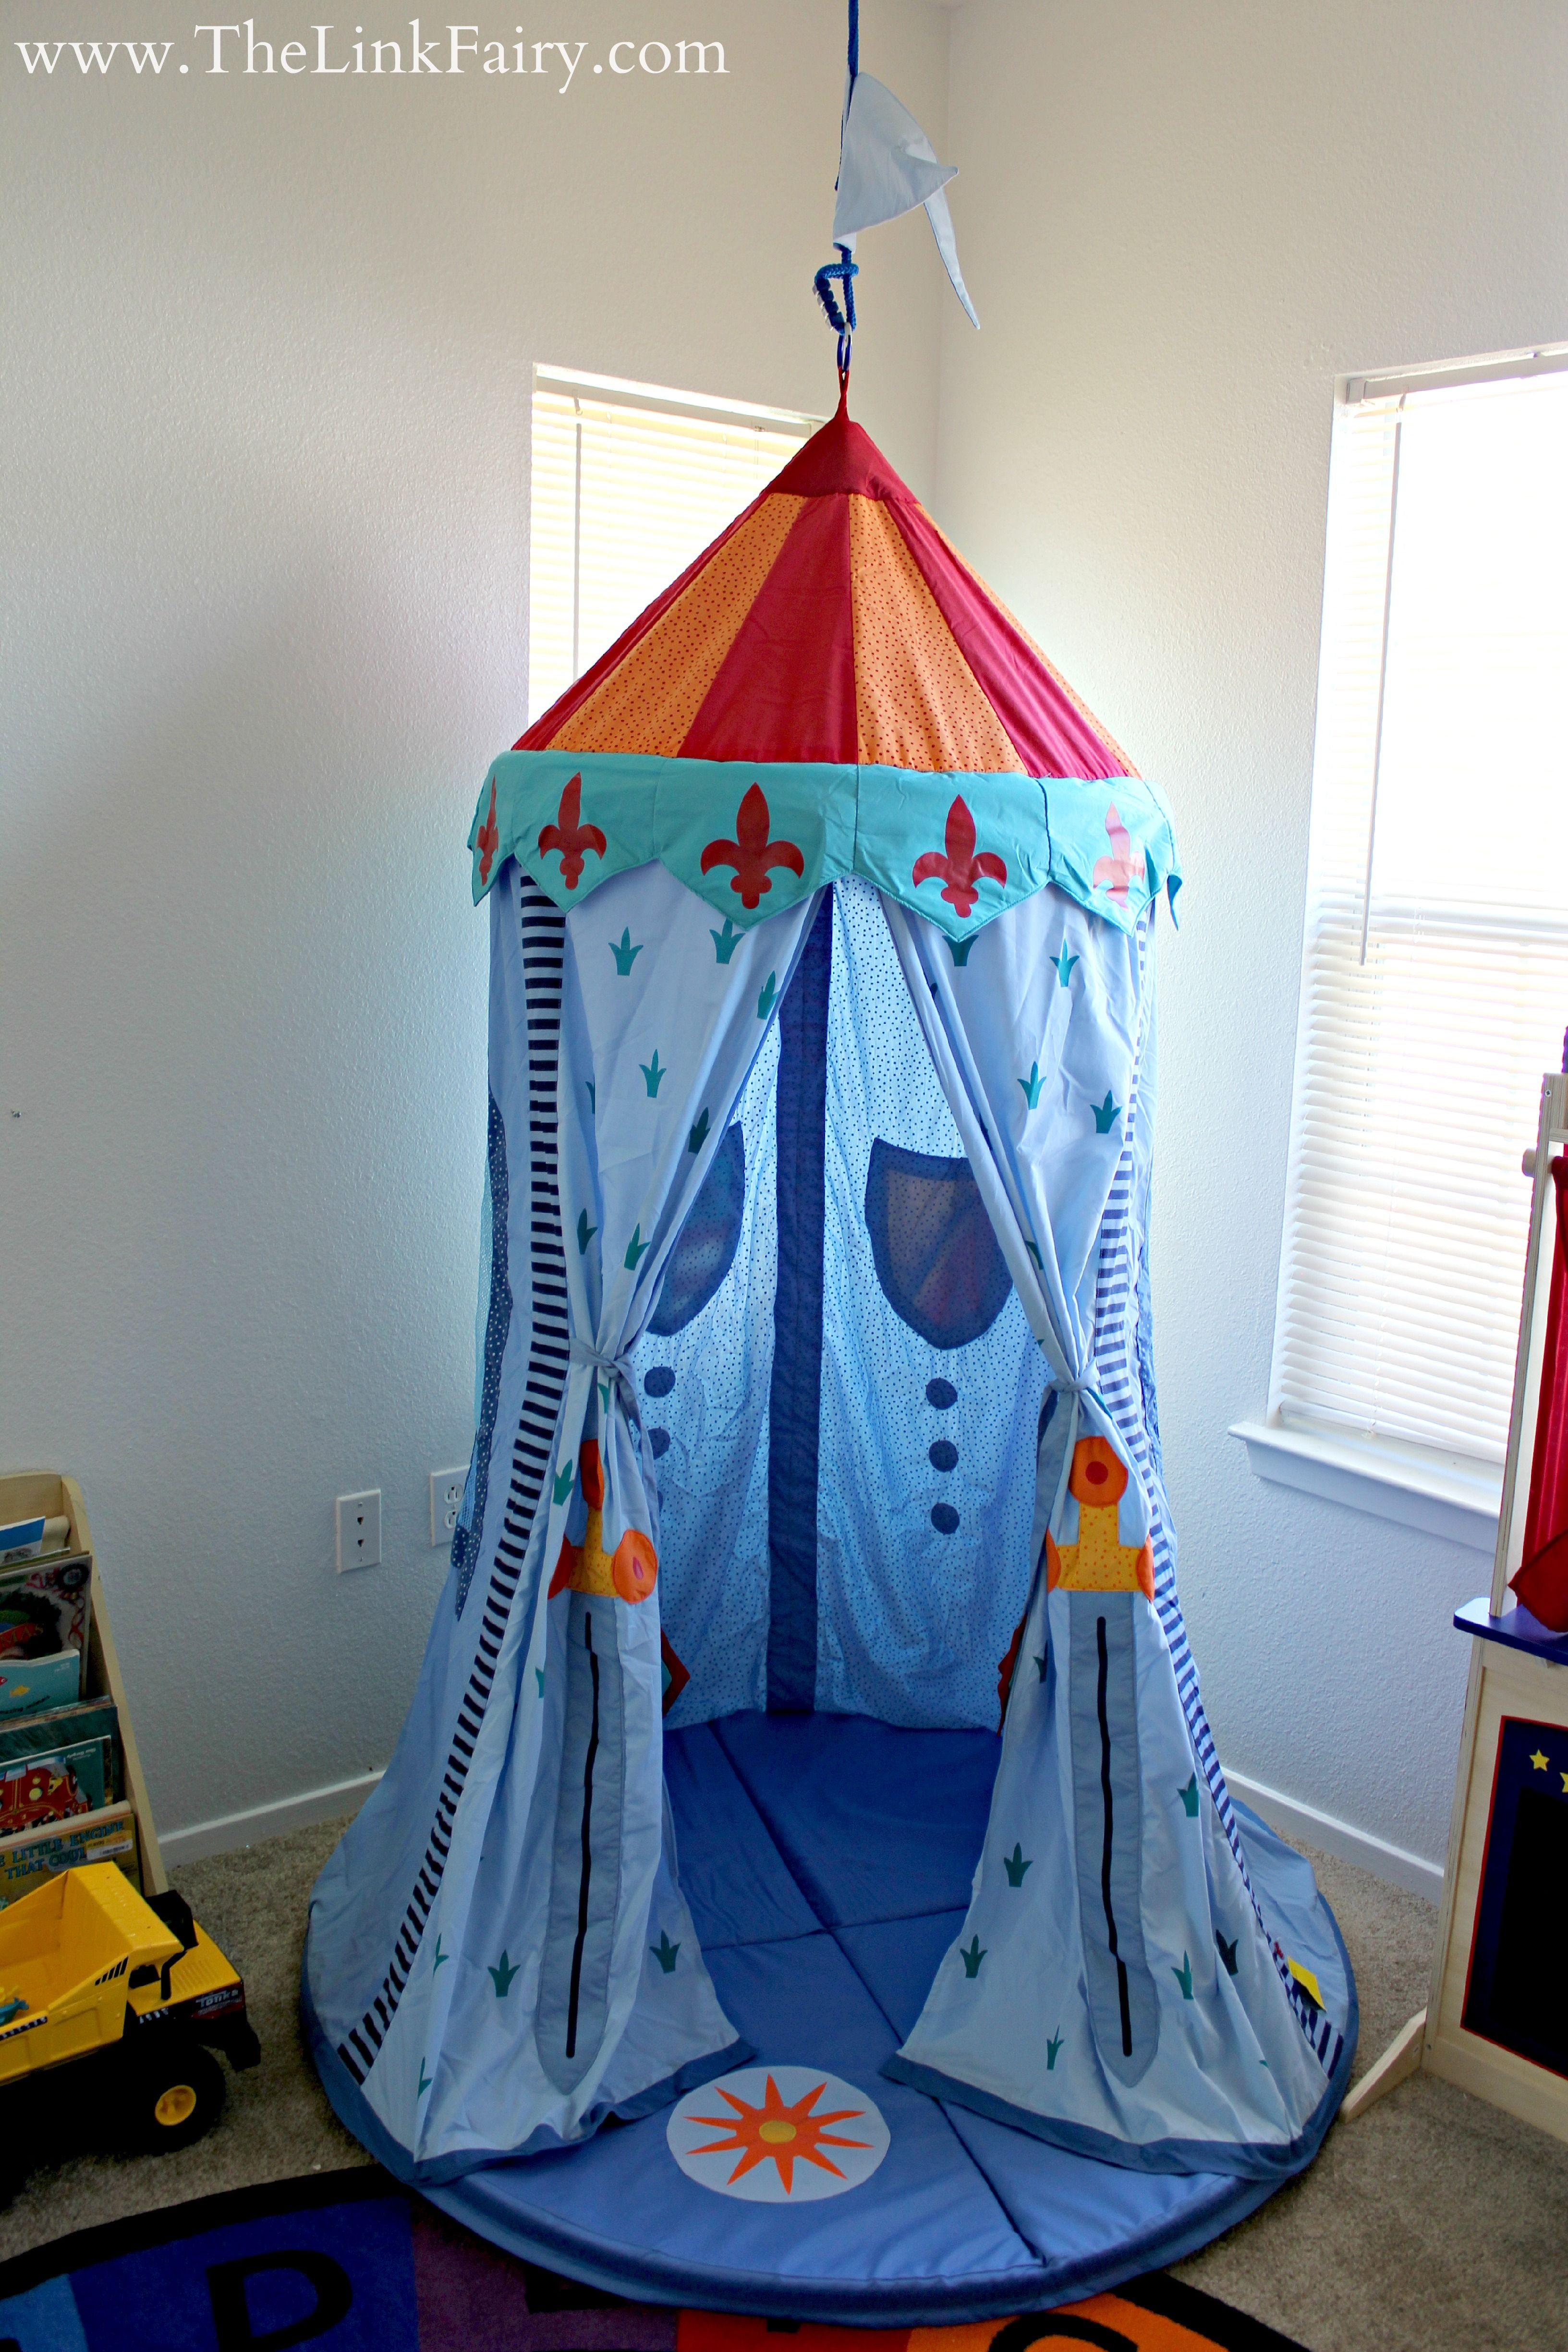 I set out on a mission to create the perfect play space for my kids. Take a look at the products I used and the final project! This Knights Hanging Tent ... & I set out on a mission to create the perfect play space for my ...